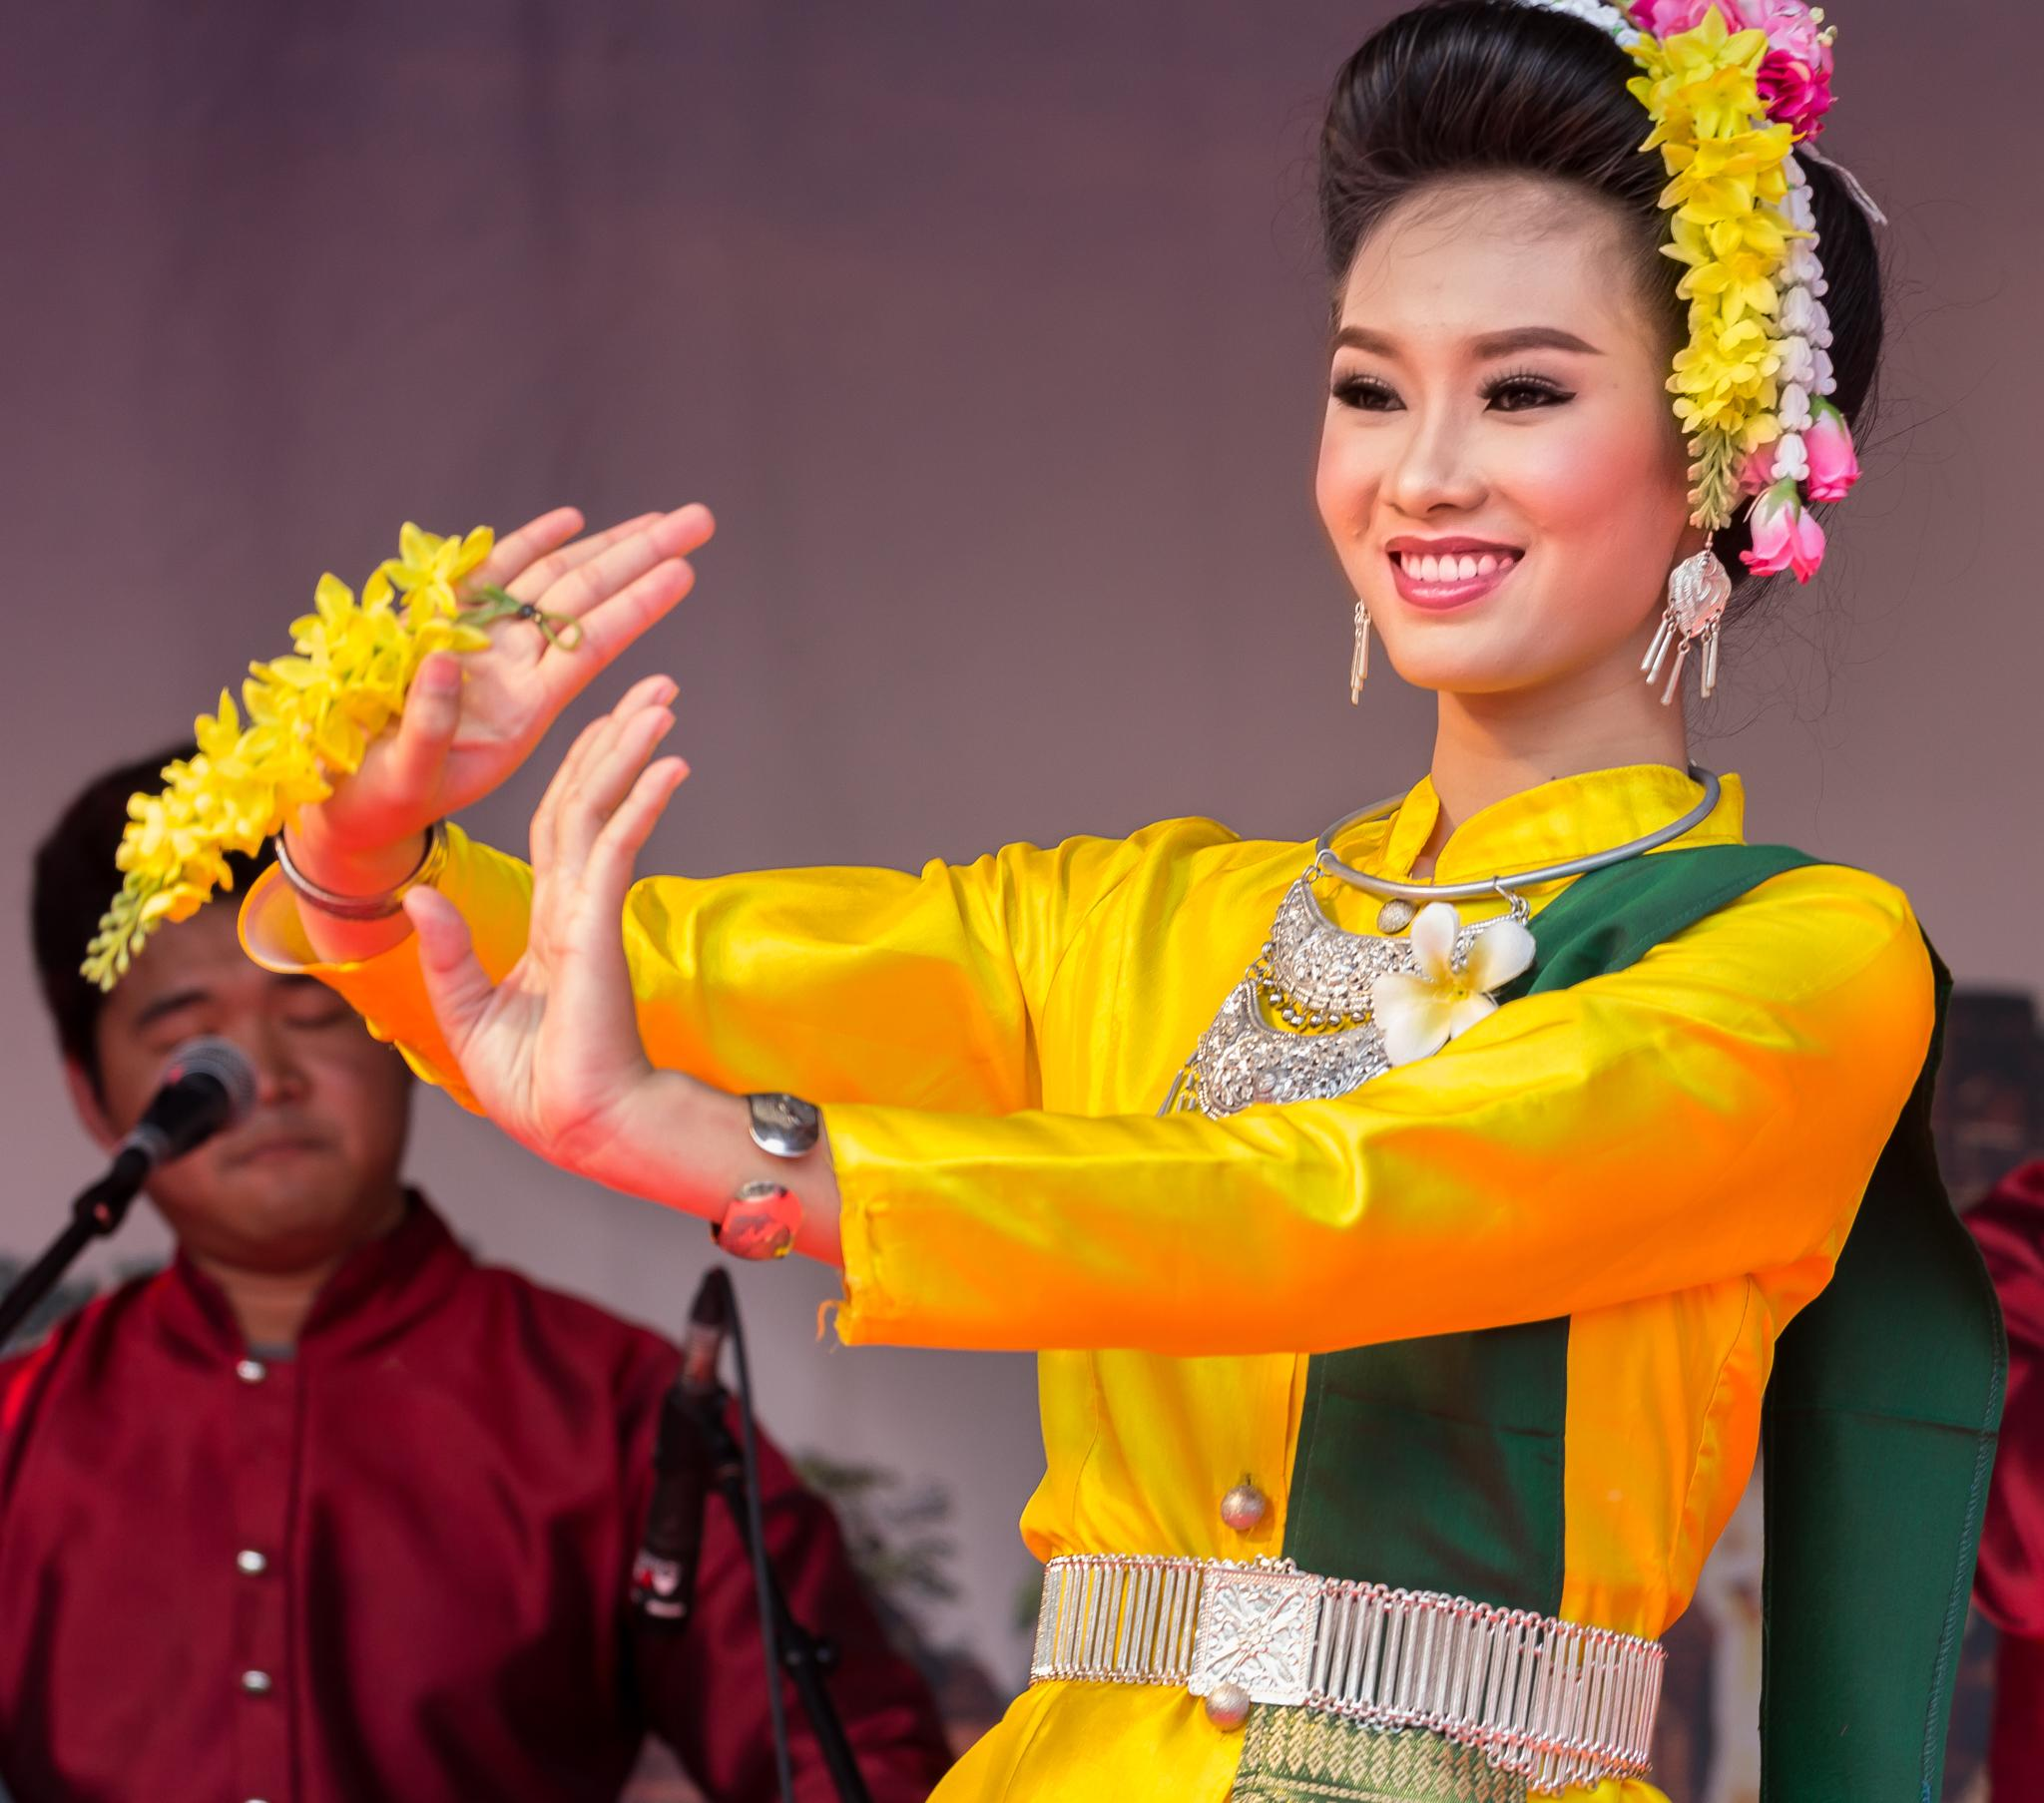 Thai dancer by Ronny Andries